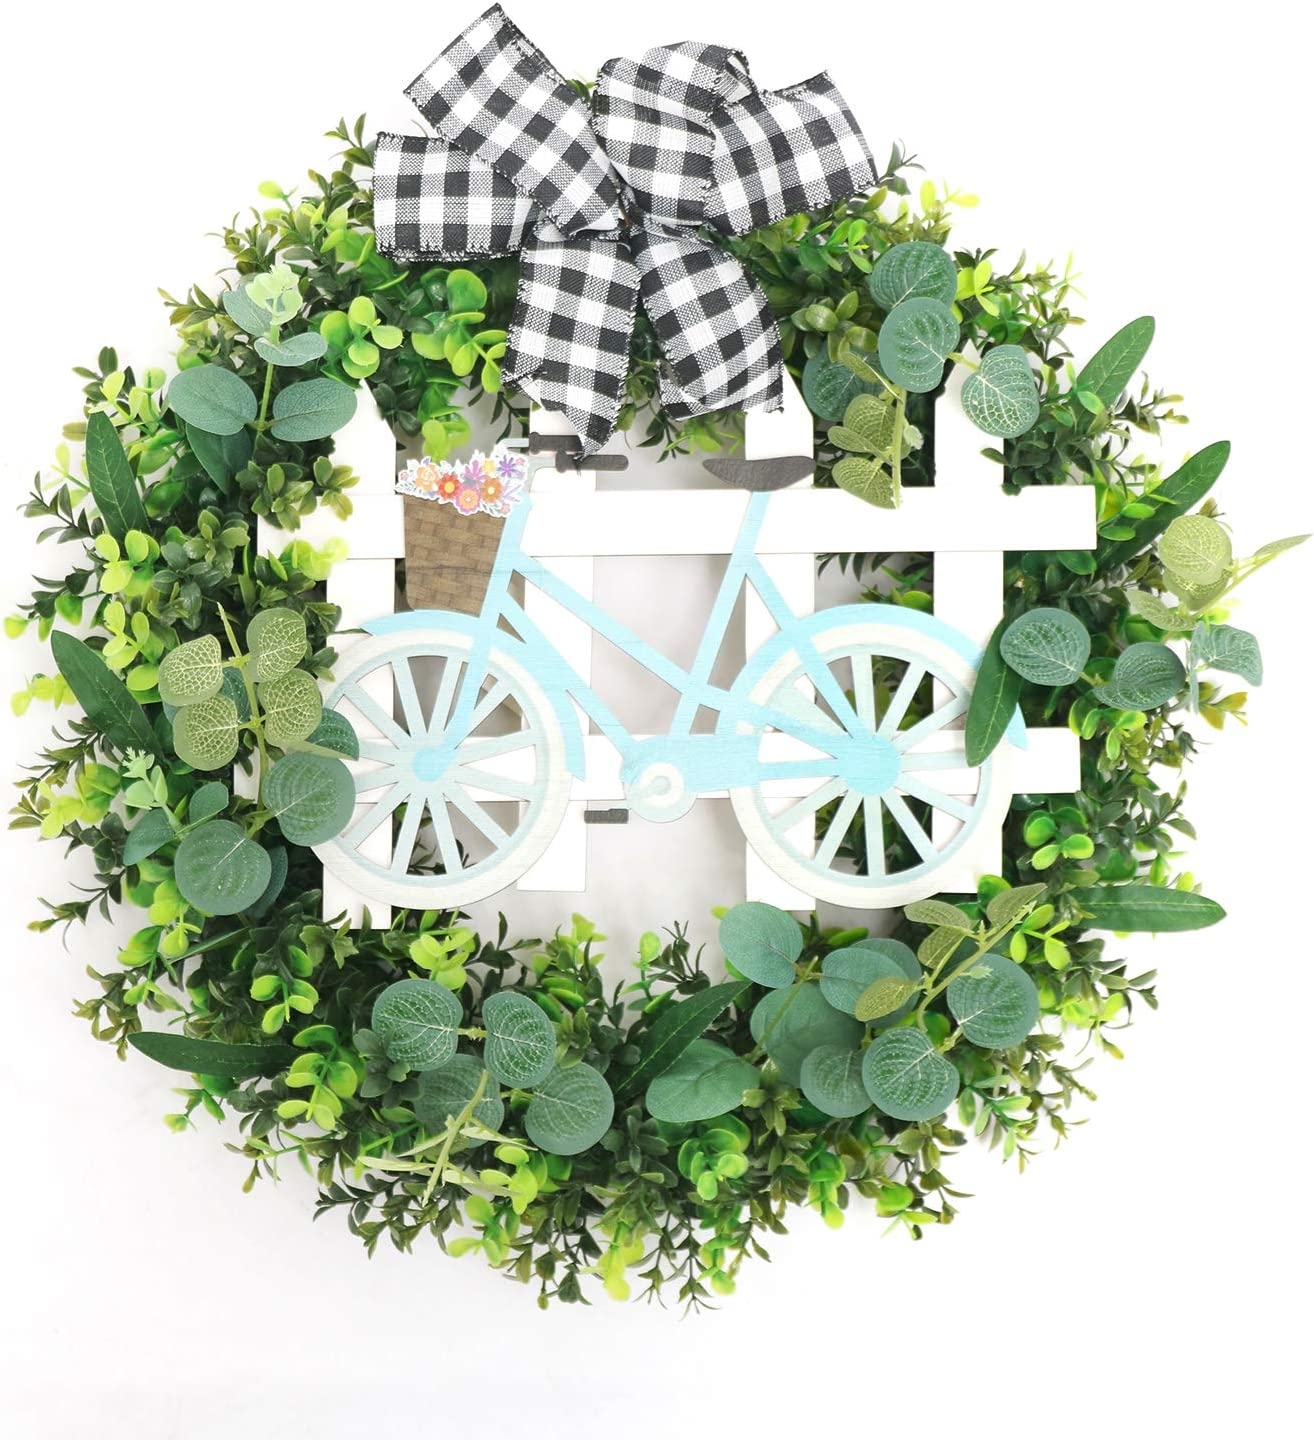 Super Holiday Artificial Green Leaves Wreath, 17.7Inch Boxwood Wreaths for Outdoor/Indoor-Rustic Home Decor for Front, Door, Wall, Window, Wedding.